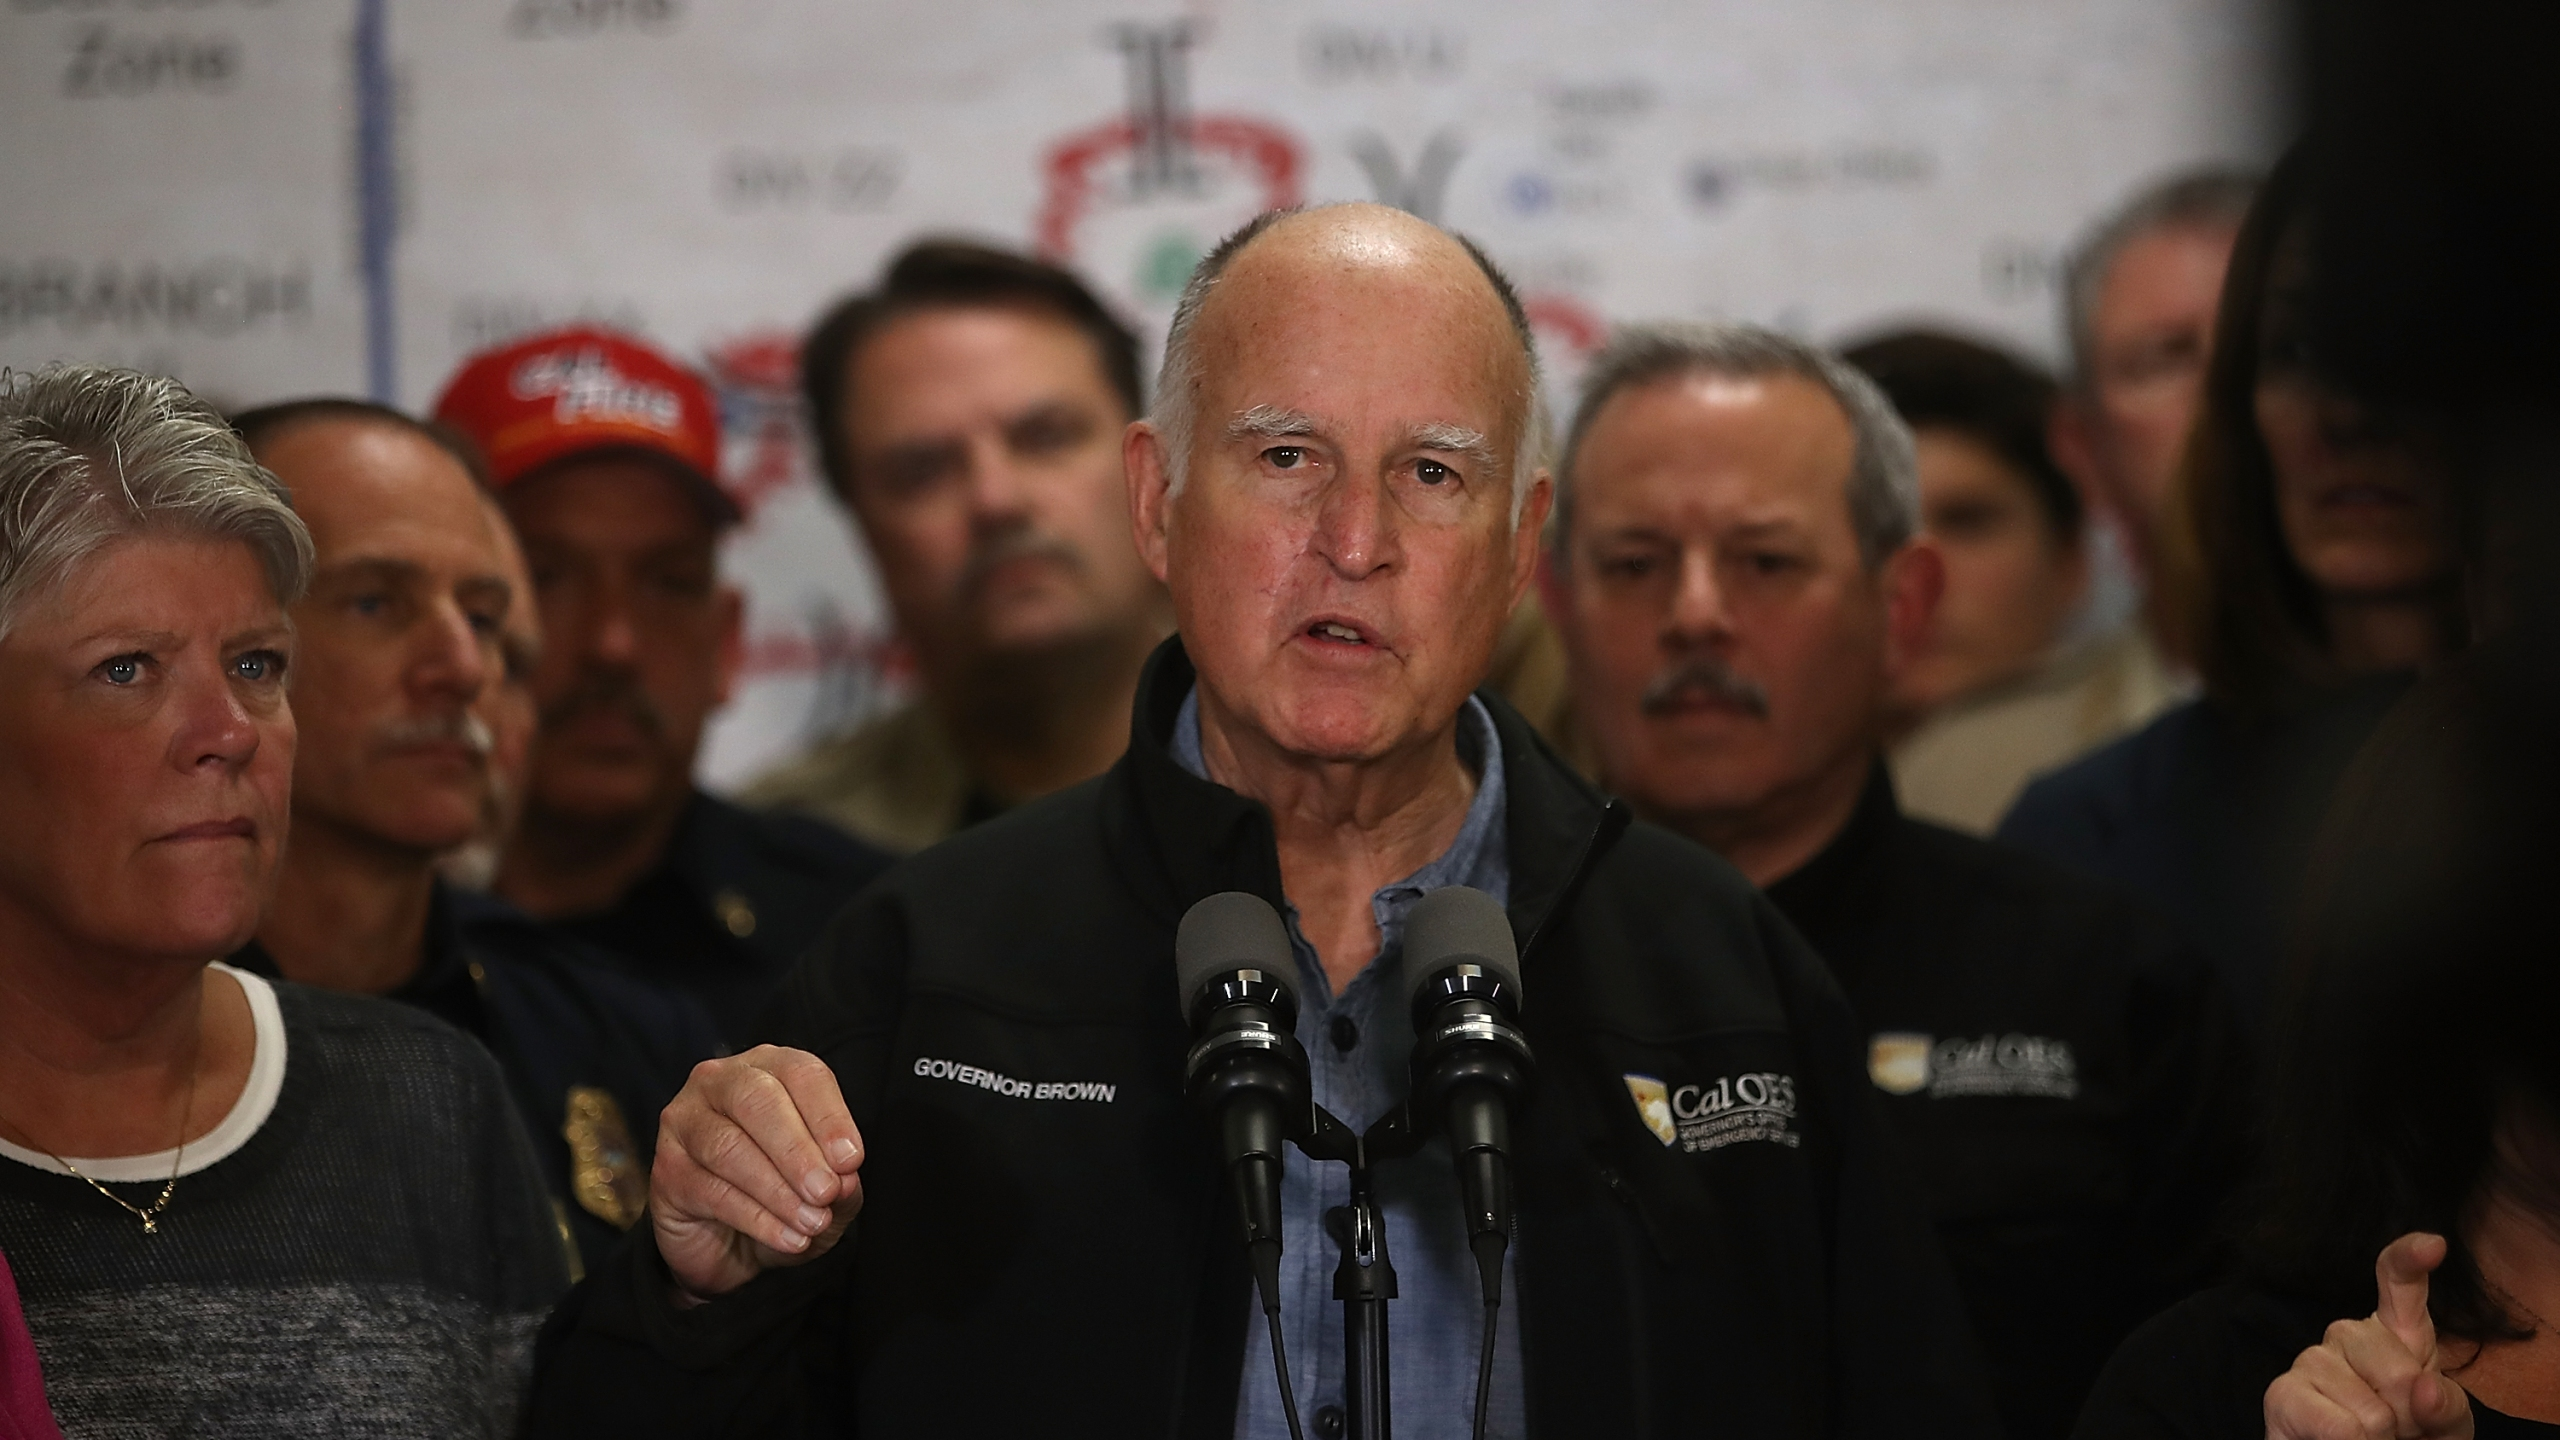 California Gov. Jerry Brown gives a briefing on the Thomas Fire and other Southern California wildfires during a news conference at the Ventura County Fairgrounds on Dec. 9, 2017. (Credit: Justin Sullivan / Getty Images)